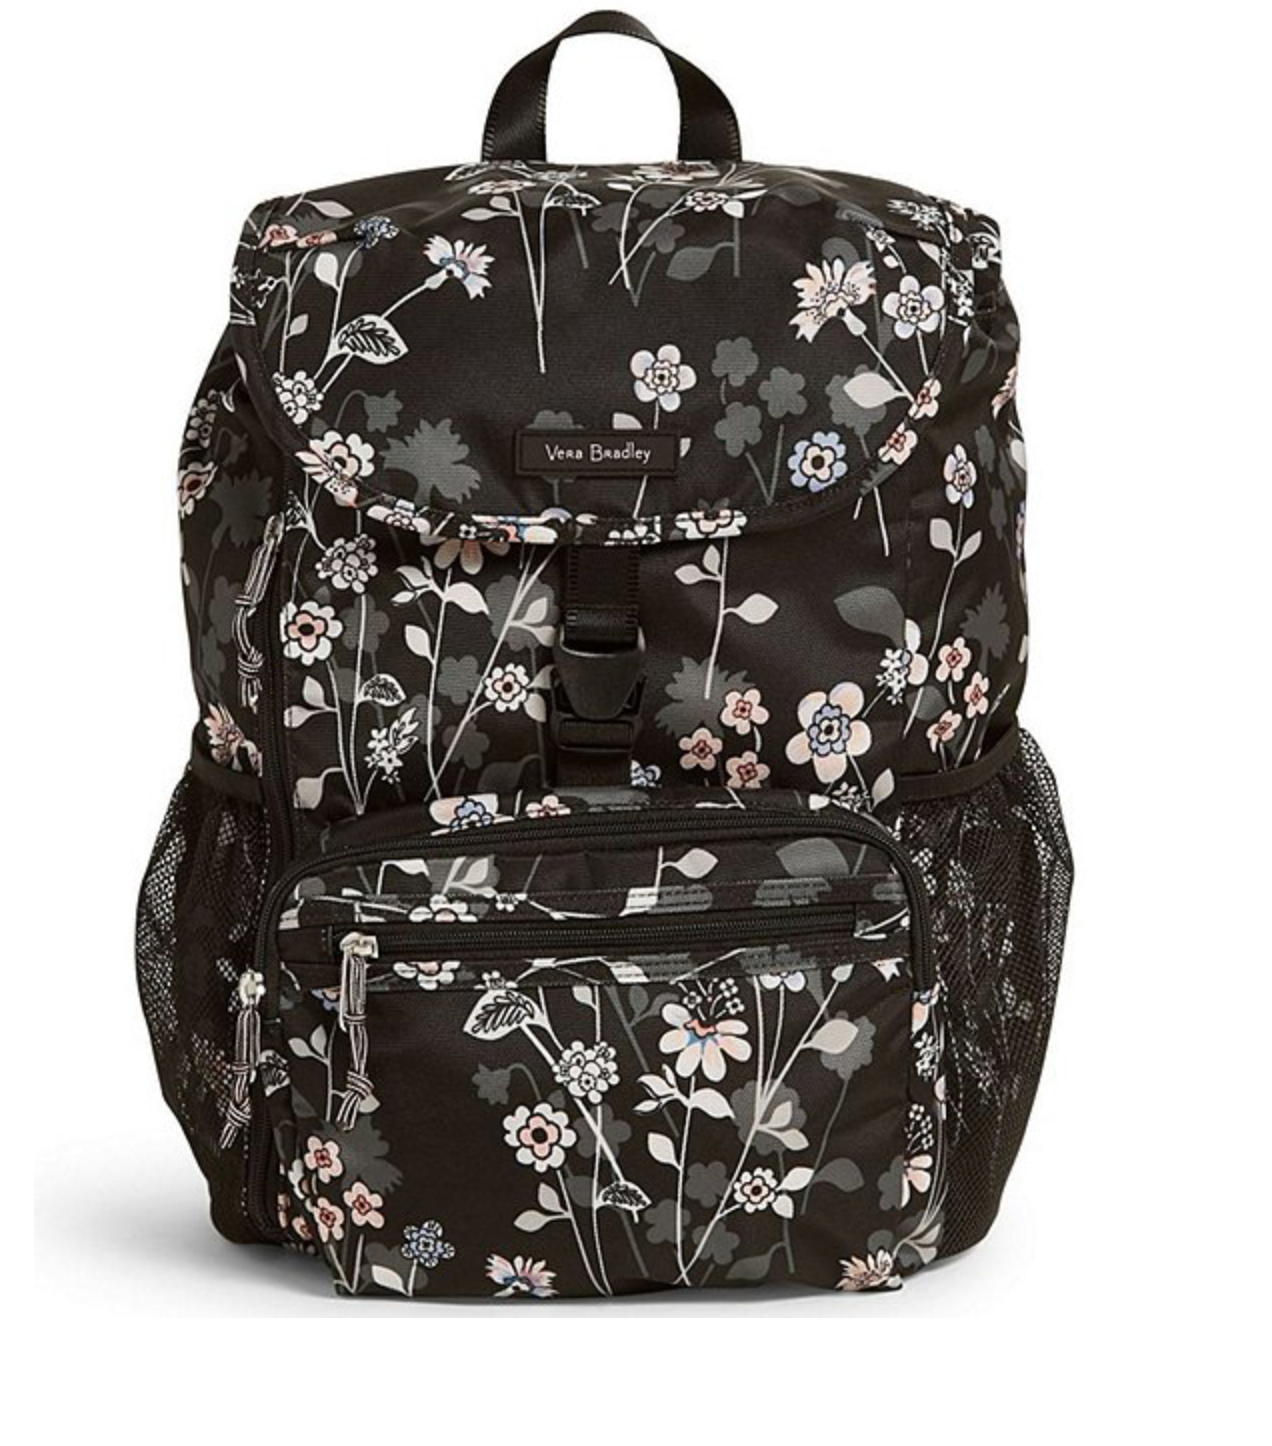 LIGHTEN UP DAY TRIPPER BACKPACK - Molly's! A Chic and Unique Boutique